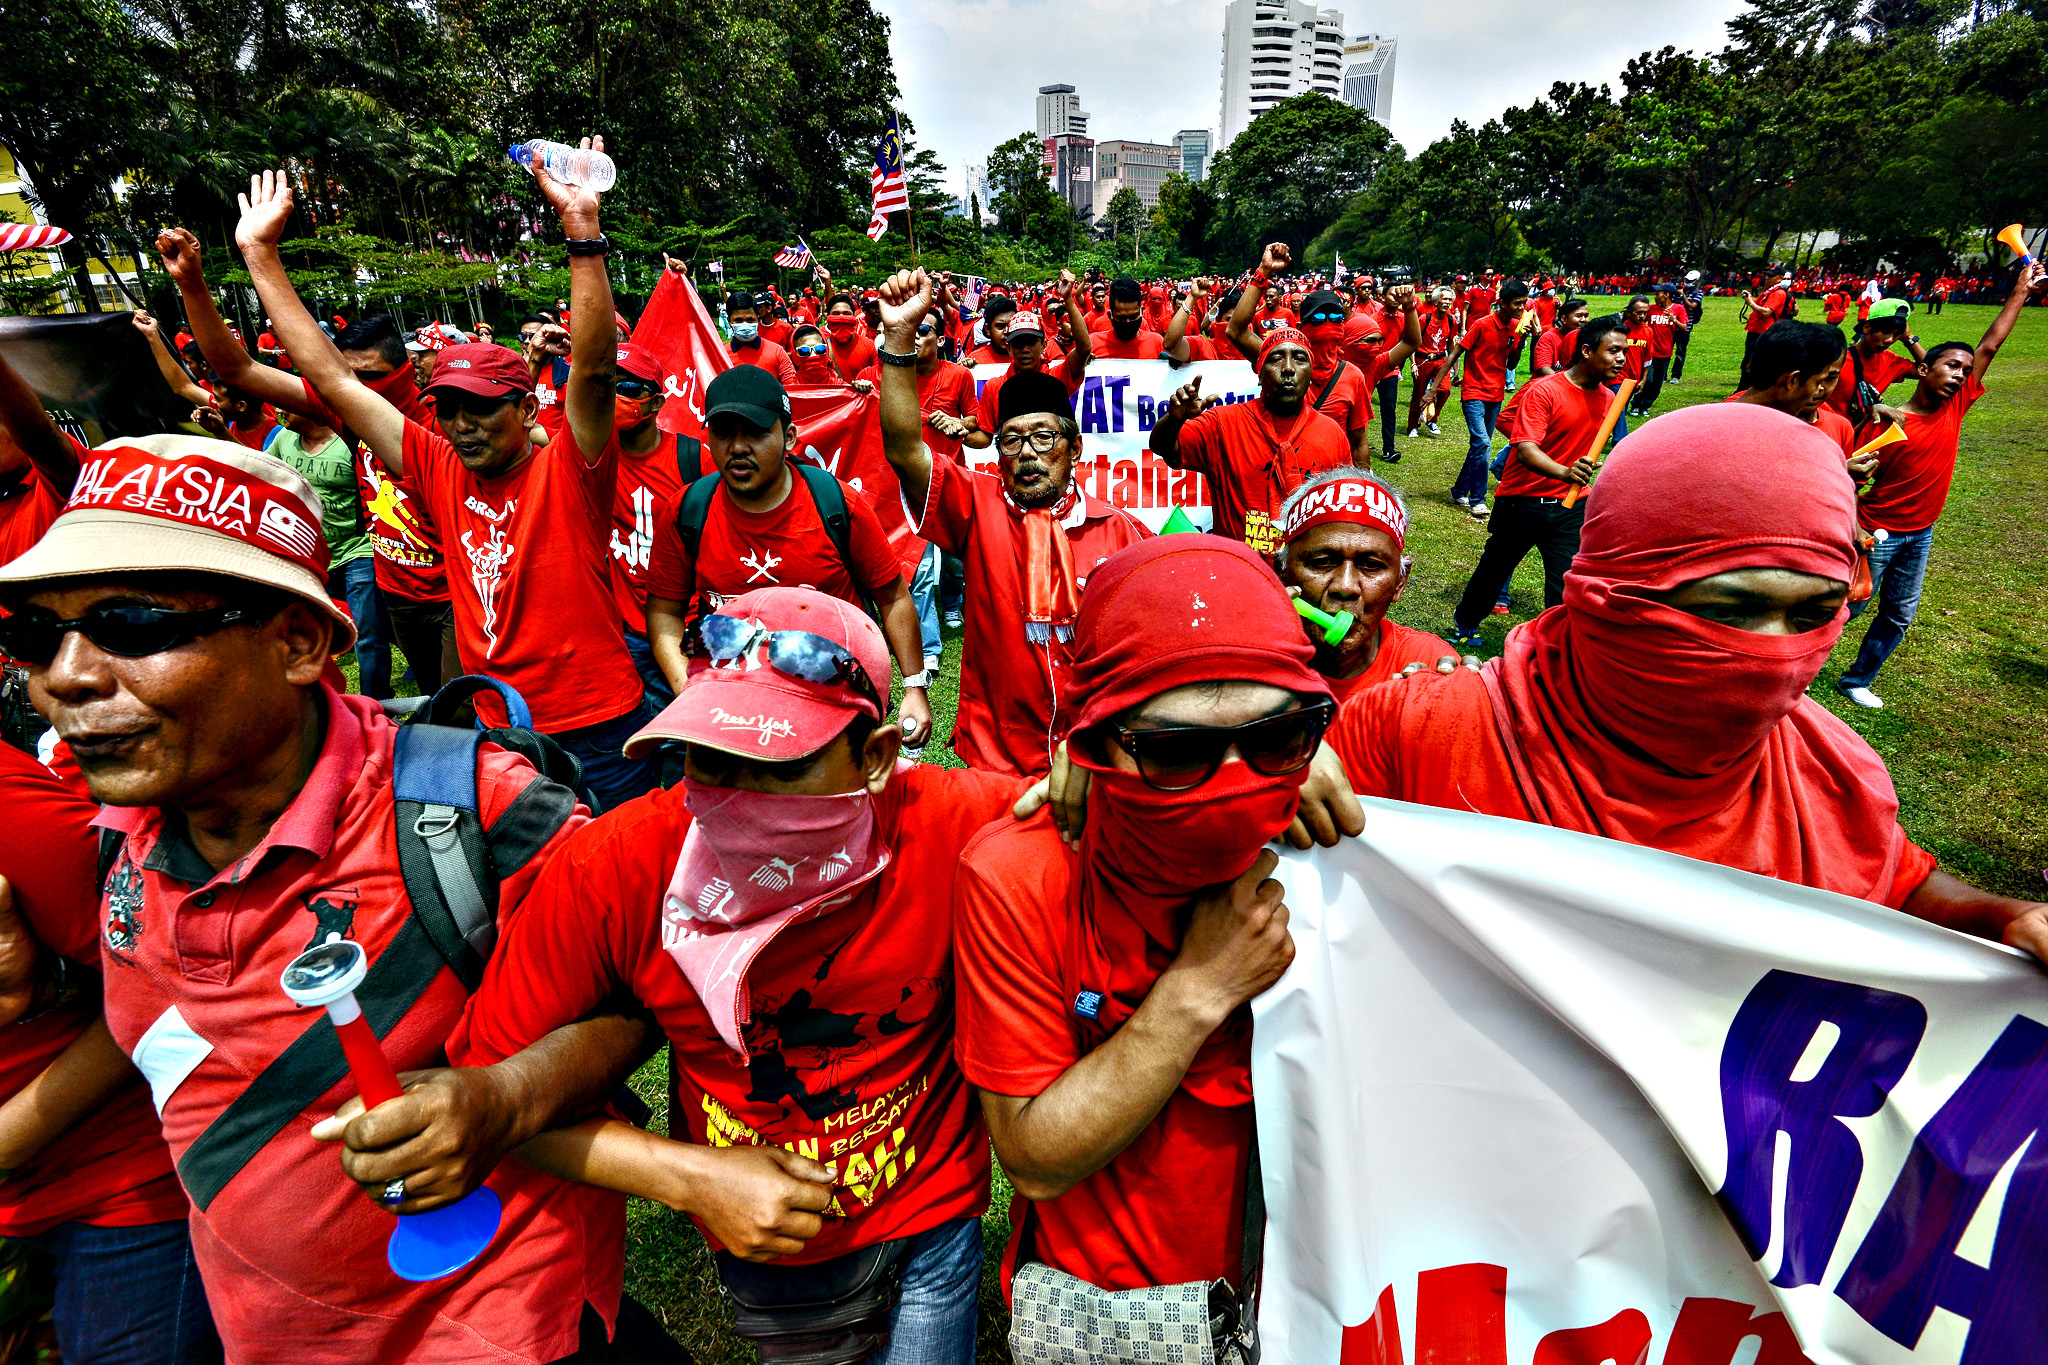 Pro-government 'red shirt' protestors stage a pro-government rally in Kuala Lumpur, Malaysia on Wednesday, Sept. 16, 2015. Thousands of ethnic Malays in red shirts held a rally Wednesday to uphold Malay dominance and support Malaysian Prime Minister Najib Razak s government, following calls for Najib to step down over a $700 million financial scandal